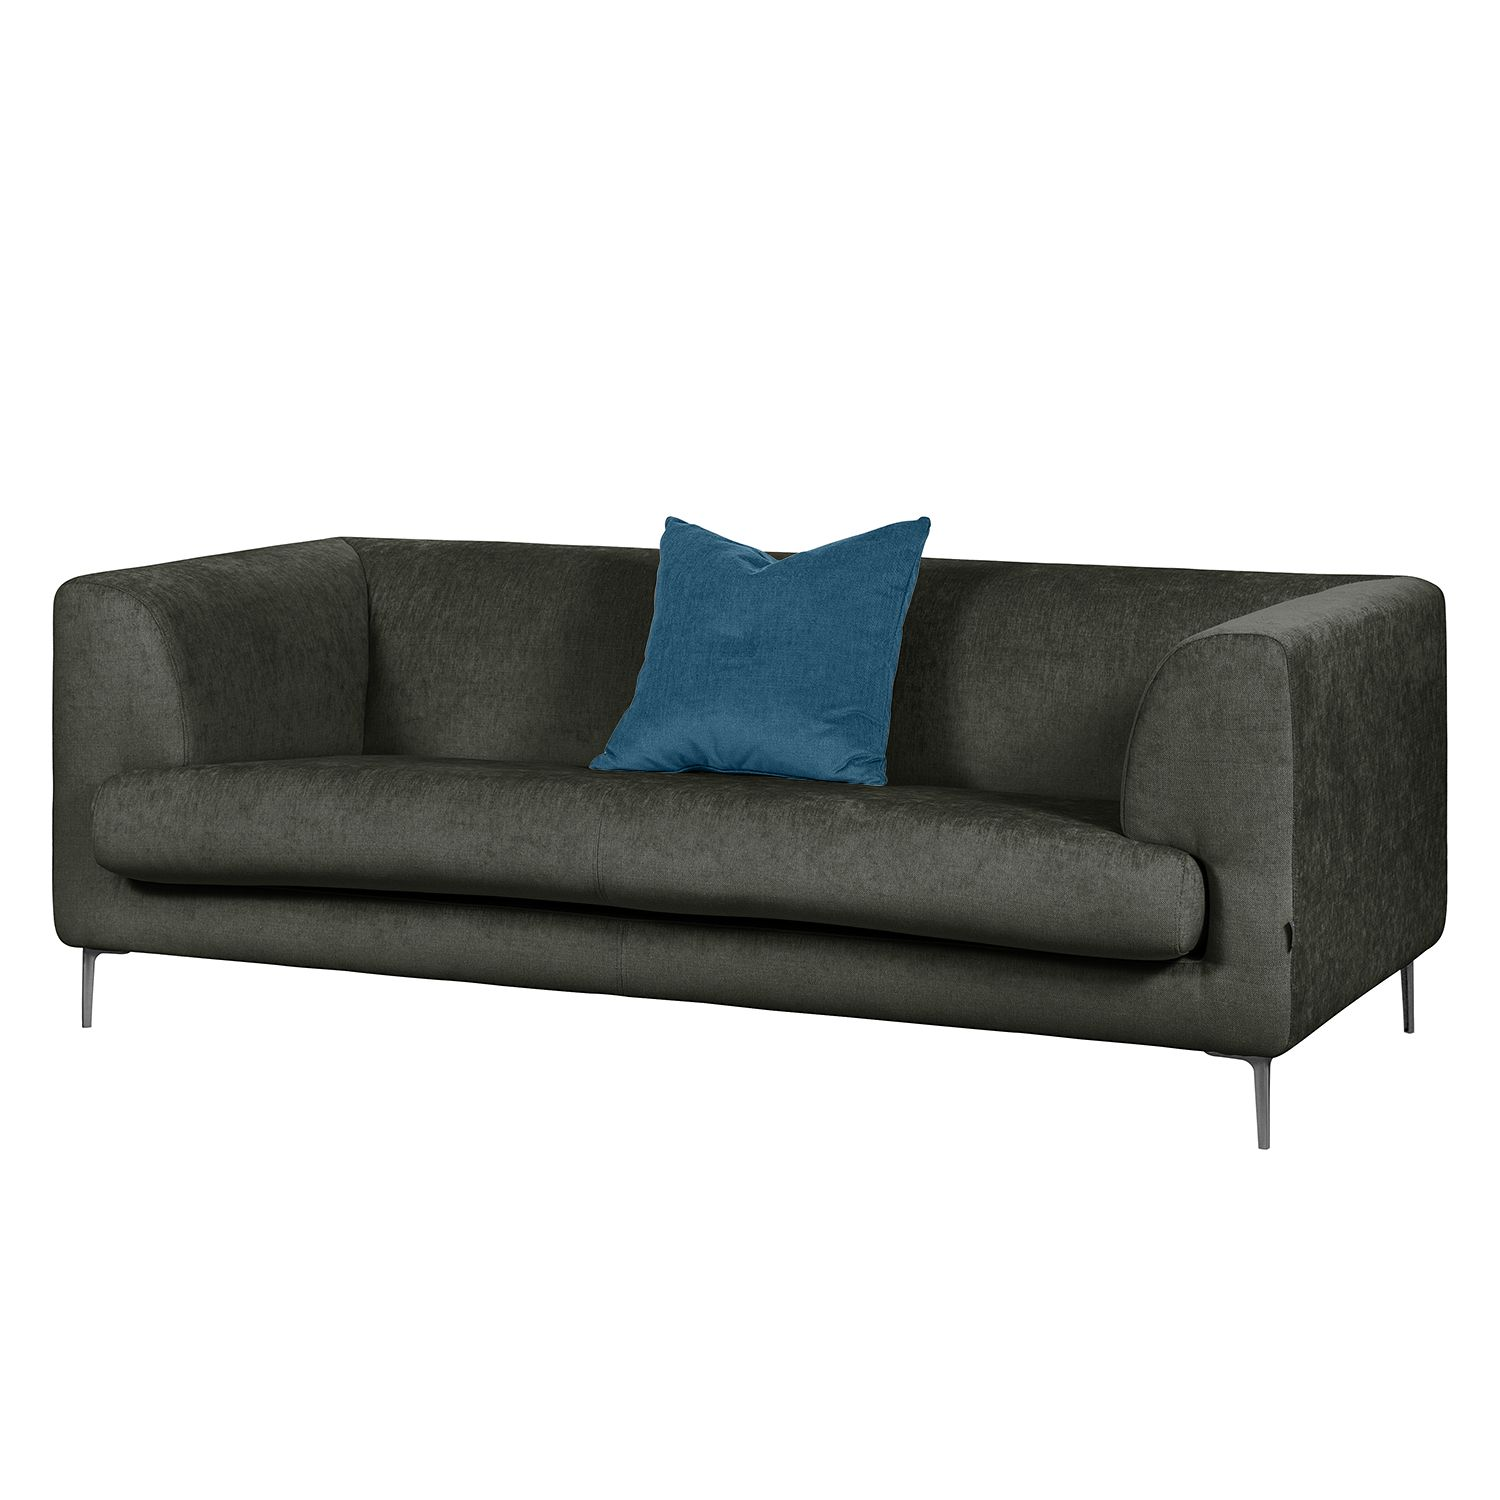 Sofa Sombret (2,5-Sitzer) - Webstoff - Anthrazit, Says Who